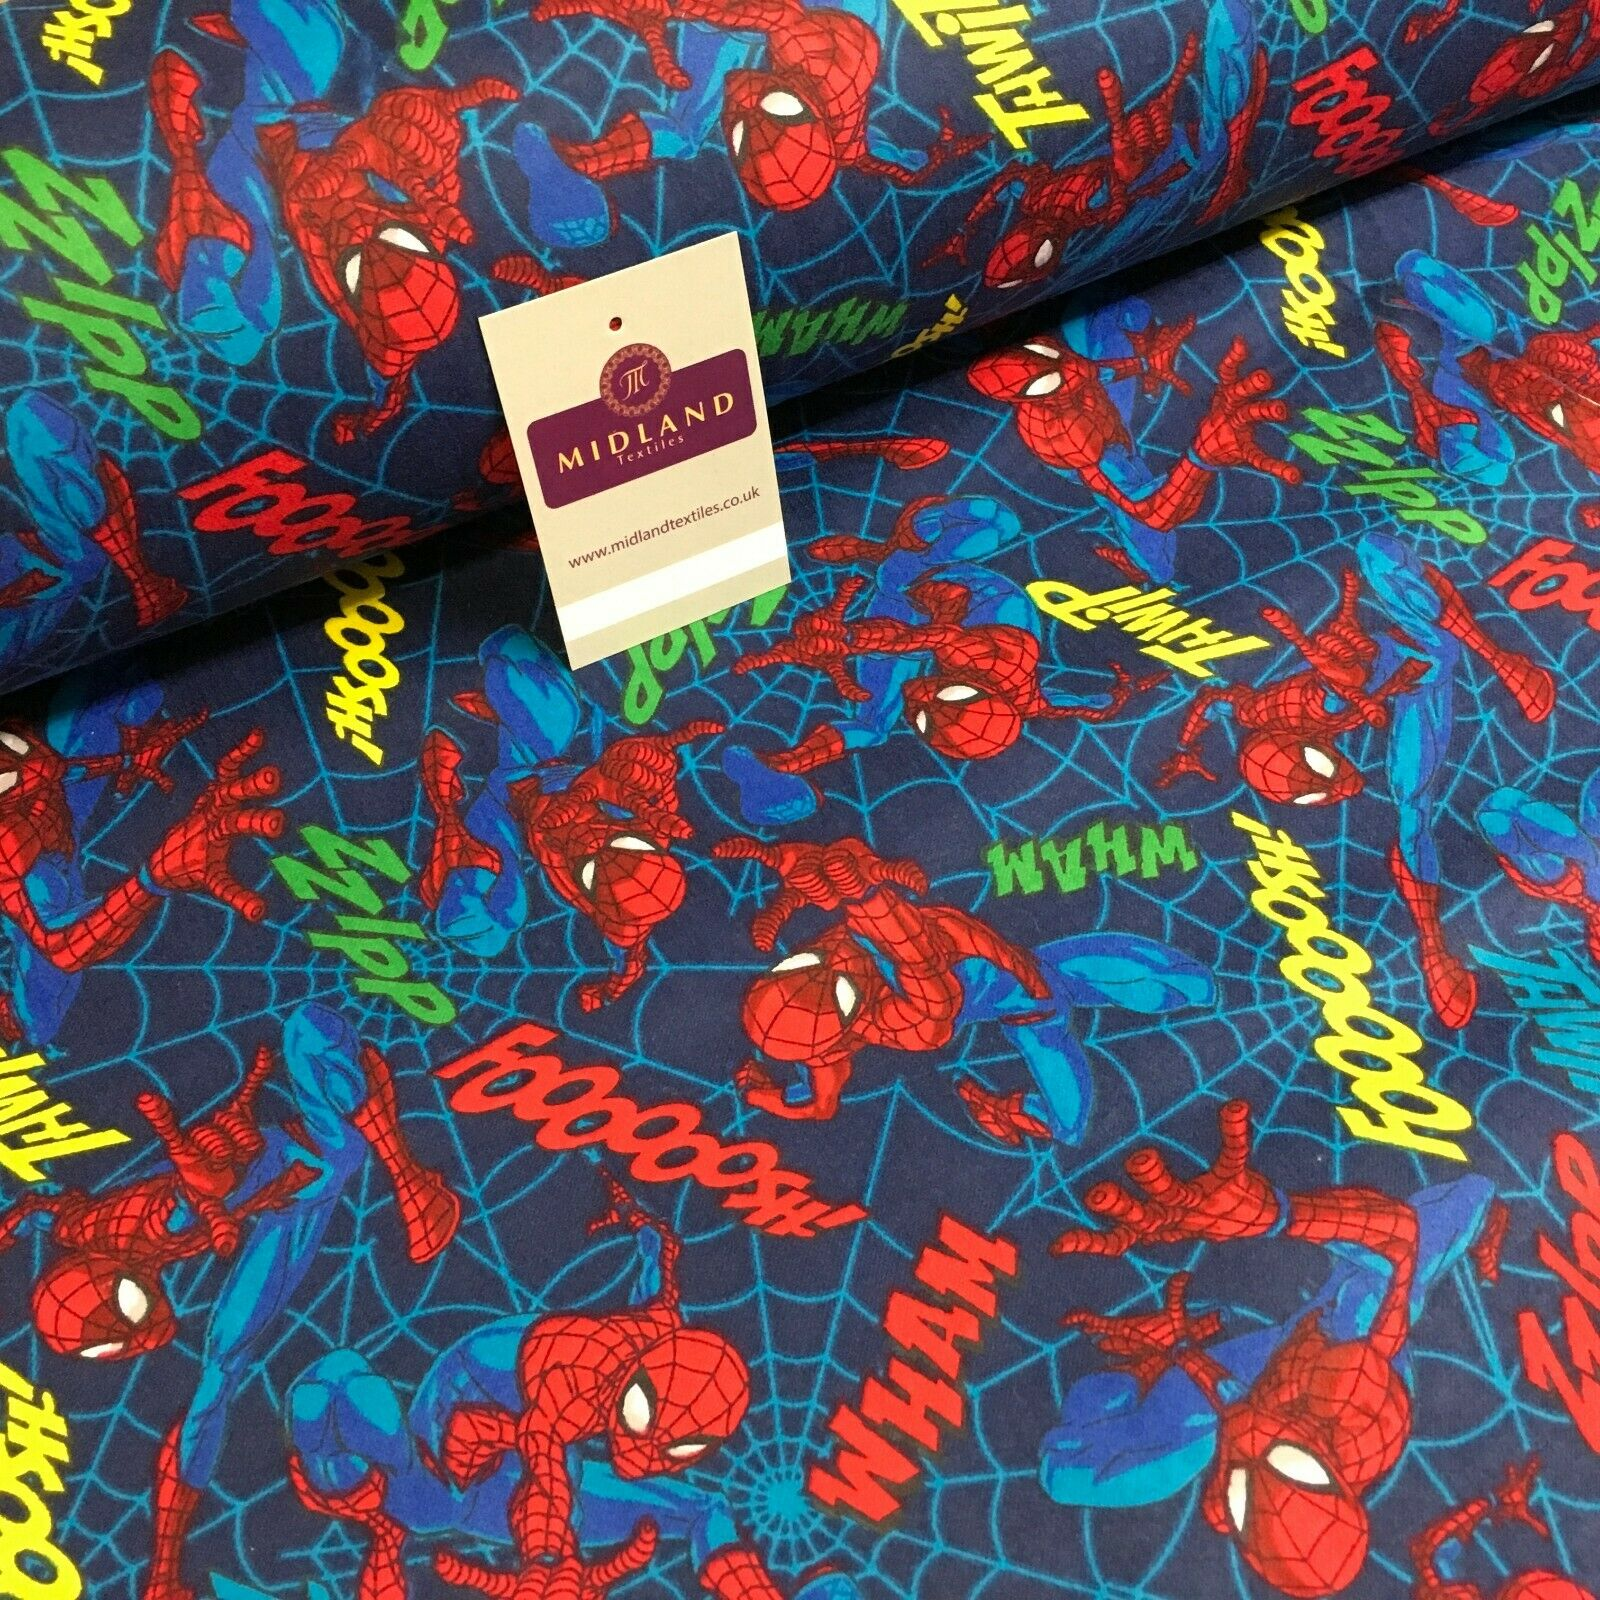 Blue Spider man Cotton Winceyette Soft Brushed Flannel Fabric 110cm MK1229-5